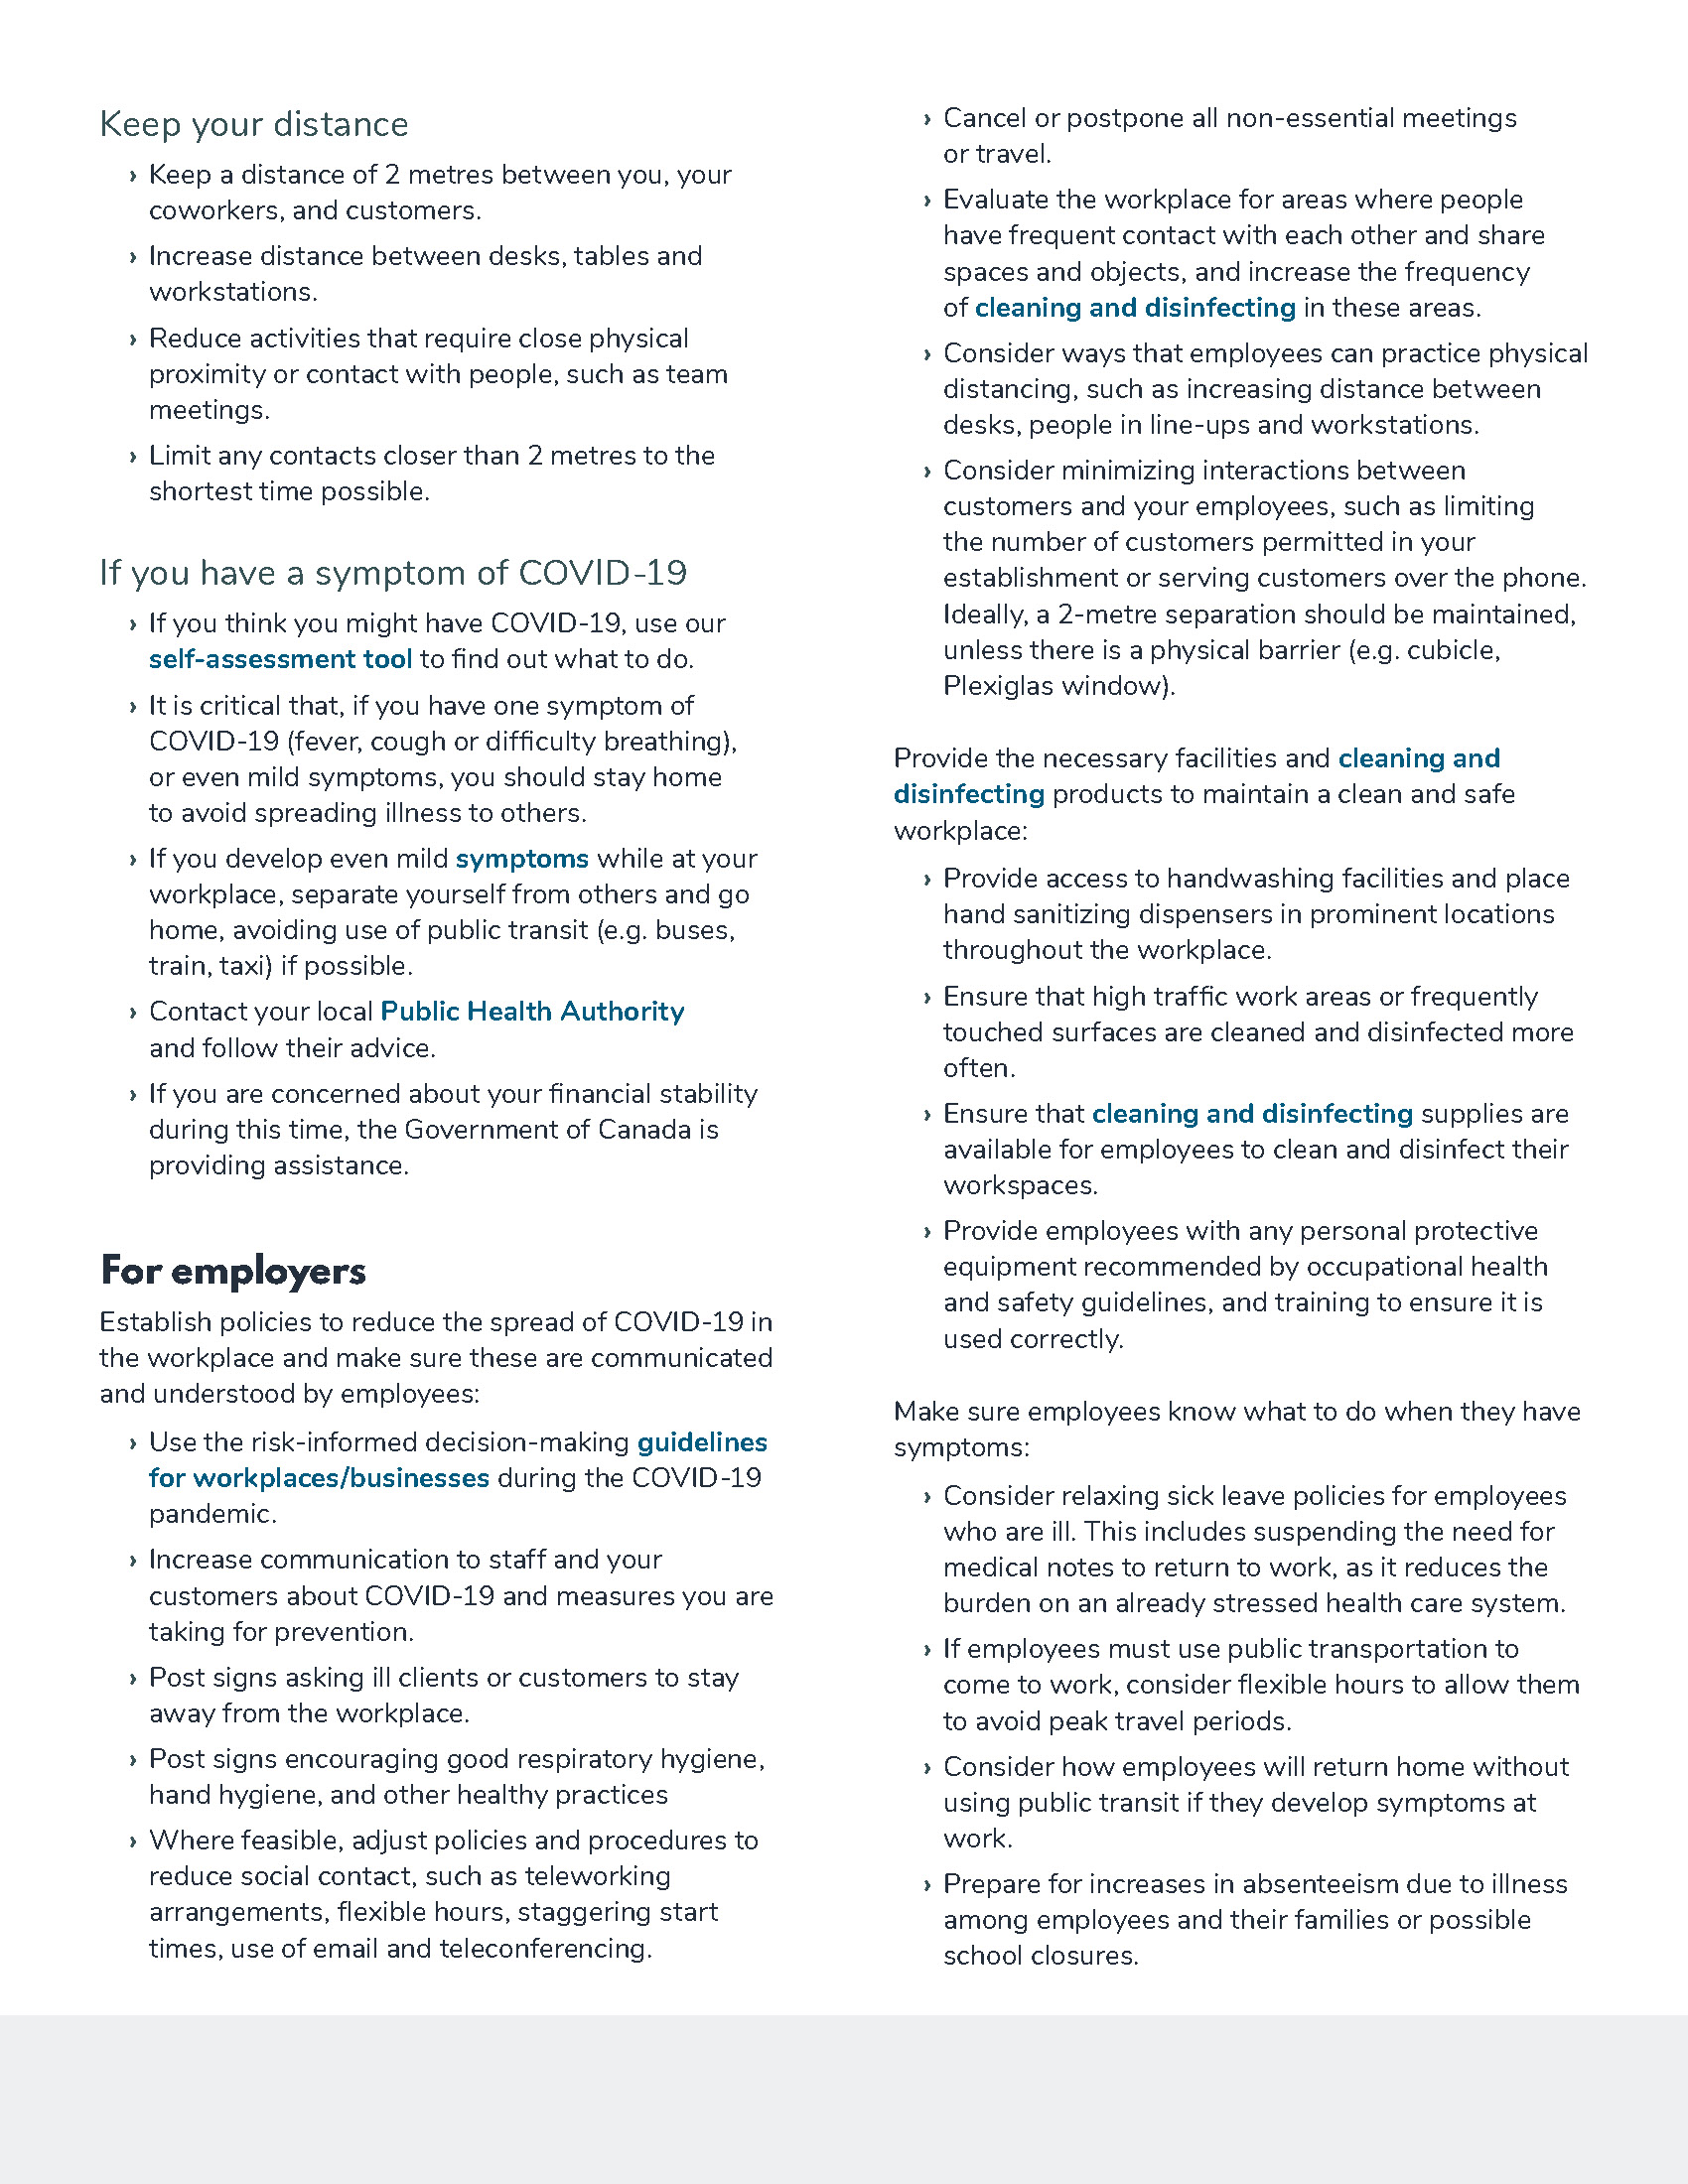 Vulnerable Populations and COVID-19 - Page 2